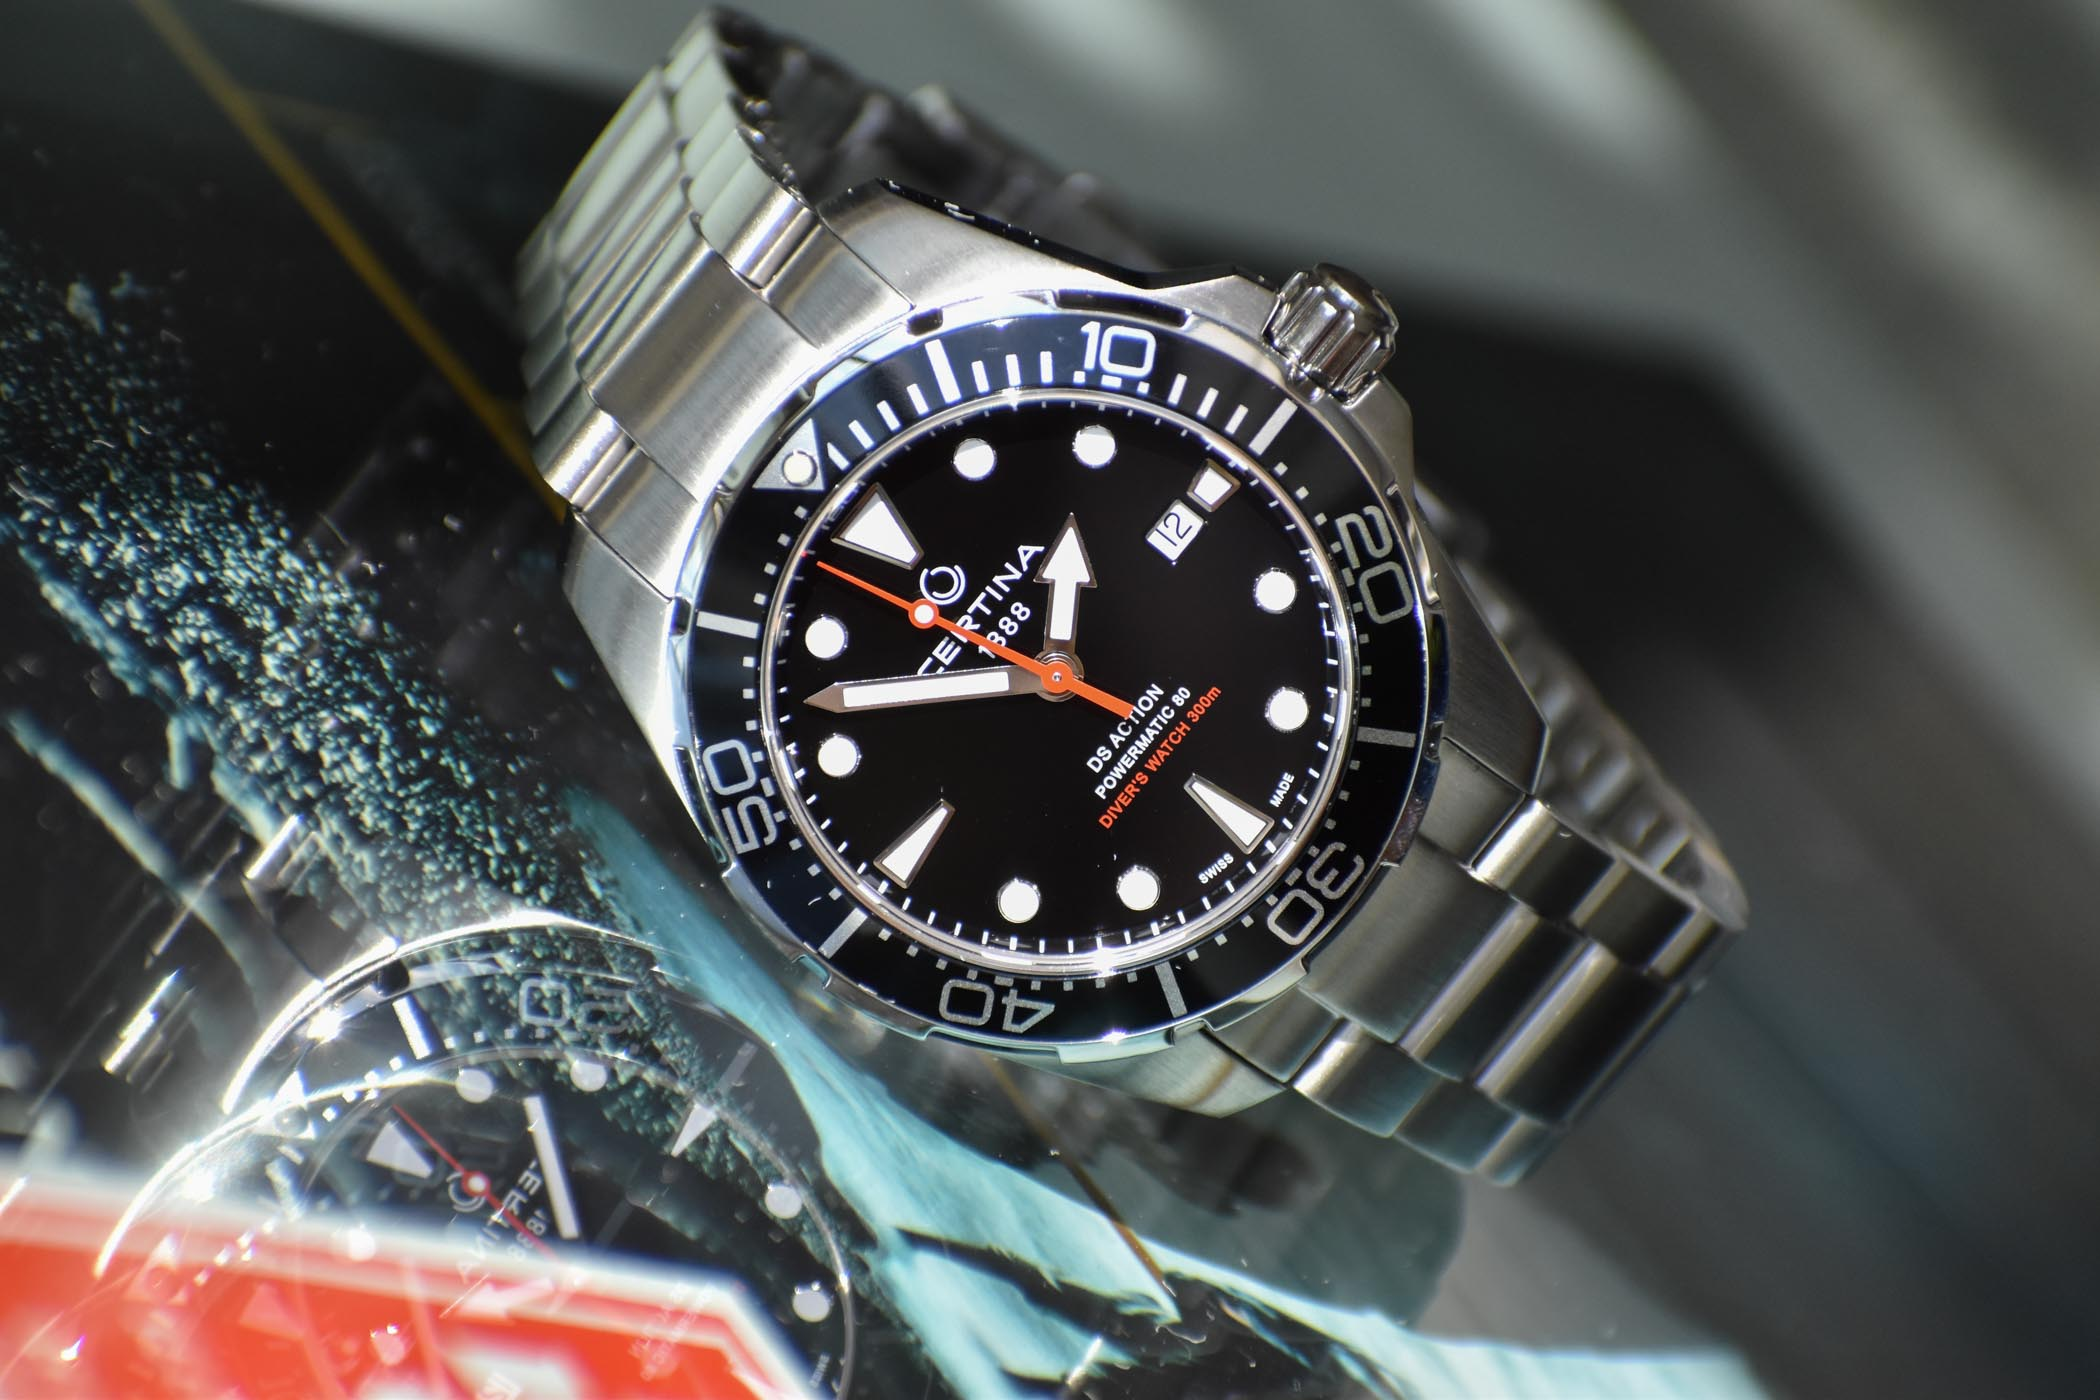 Buying Guide - 3 Watches from Certina Hamilton Tissot with Powermatic movement